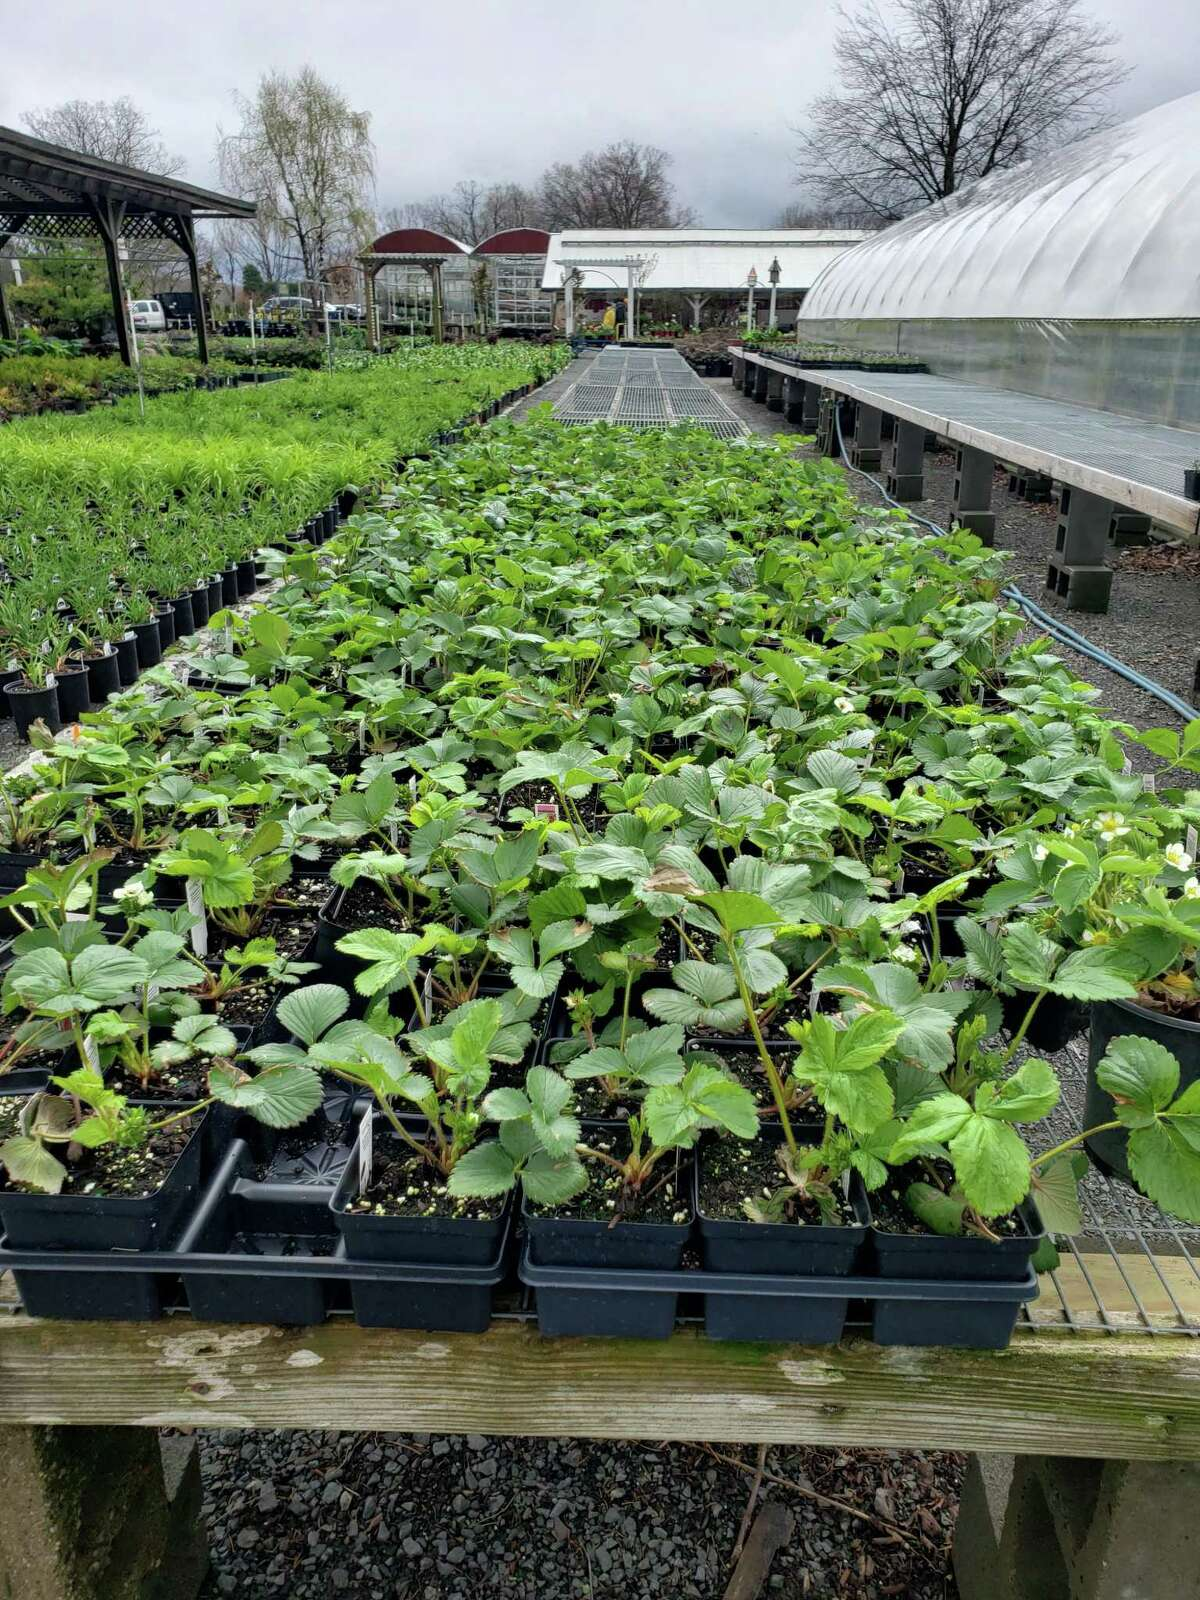 When starting a vegetable garden, begin with pre-grown plants, like these from Hollandia Nursery in Bethel, and choose vegetables that are easy to grow, such as cucumbers, tomatoes, peppers, onions, and celery.